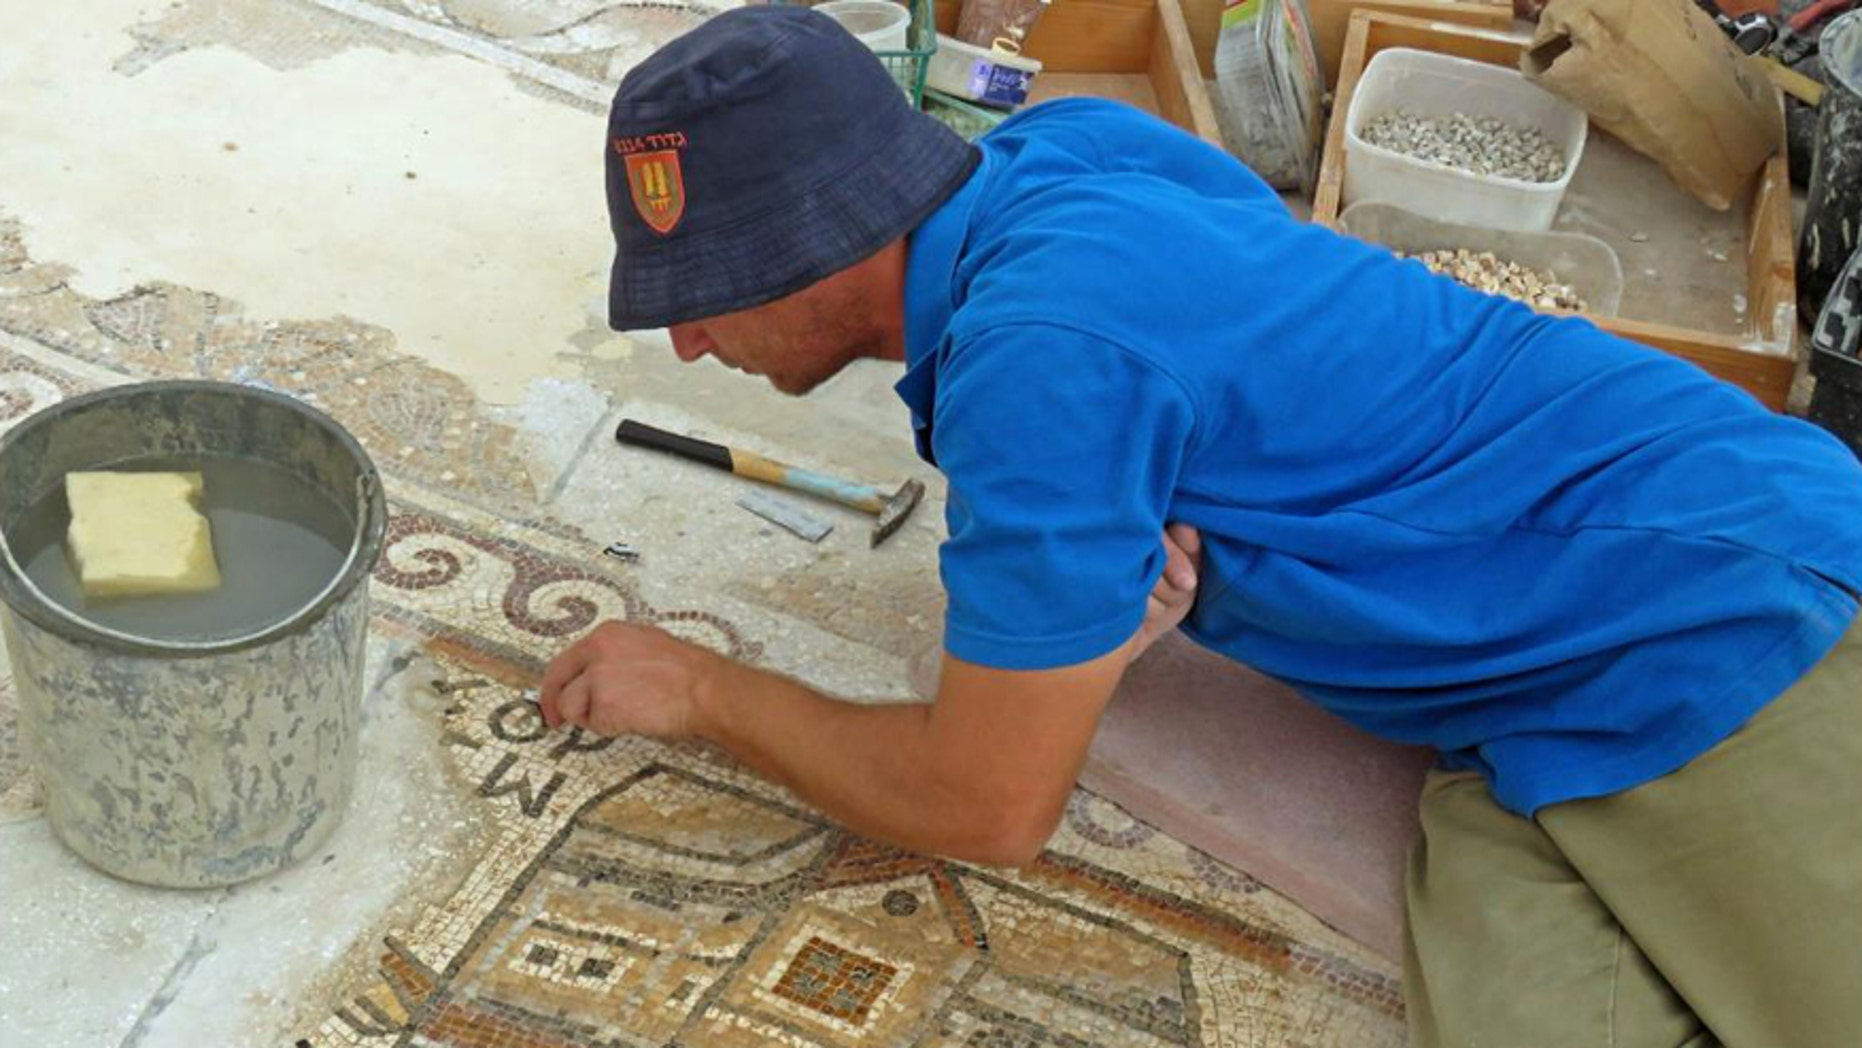 A worker of the Israel Antiquities Authority conserving the mosaic.